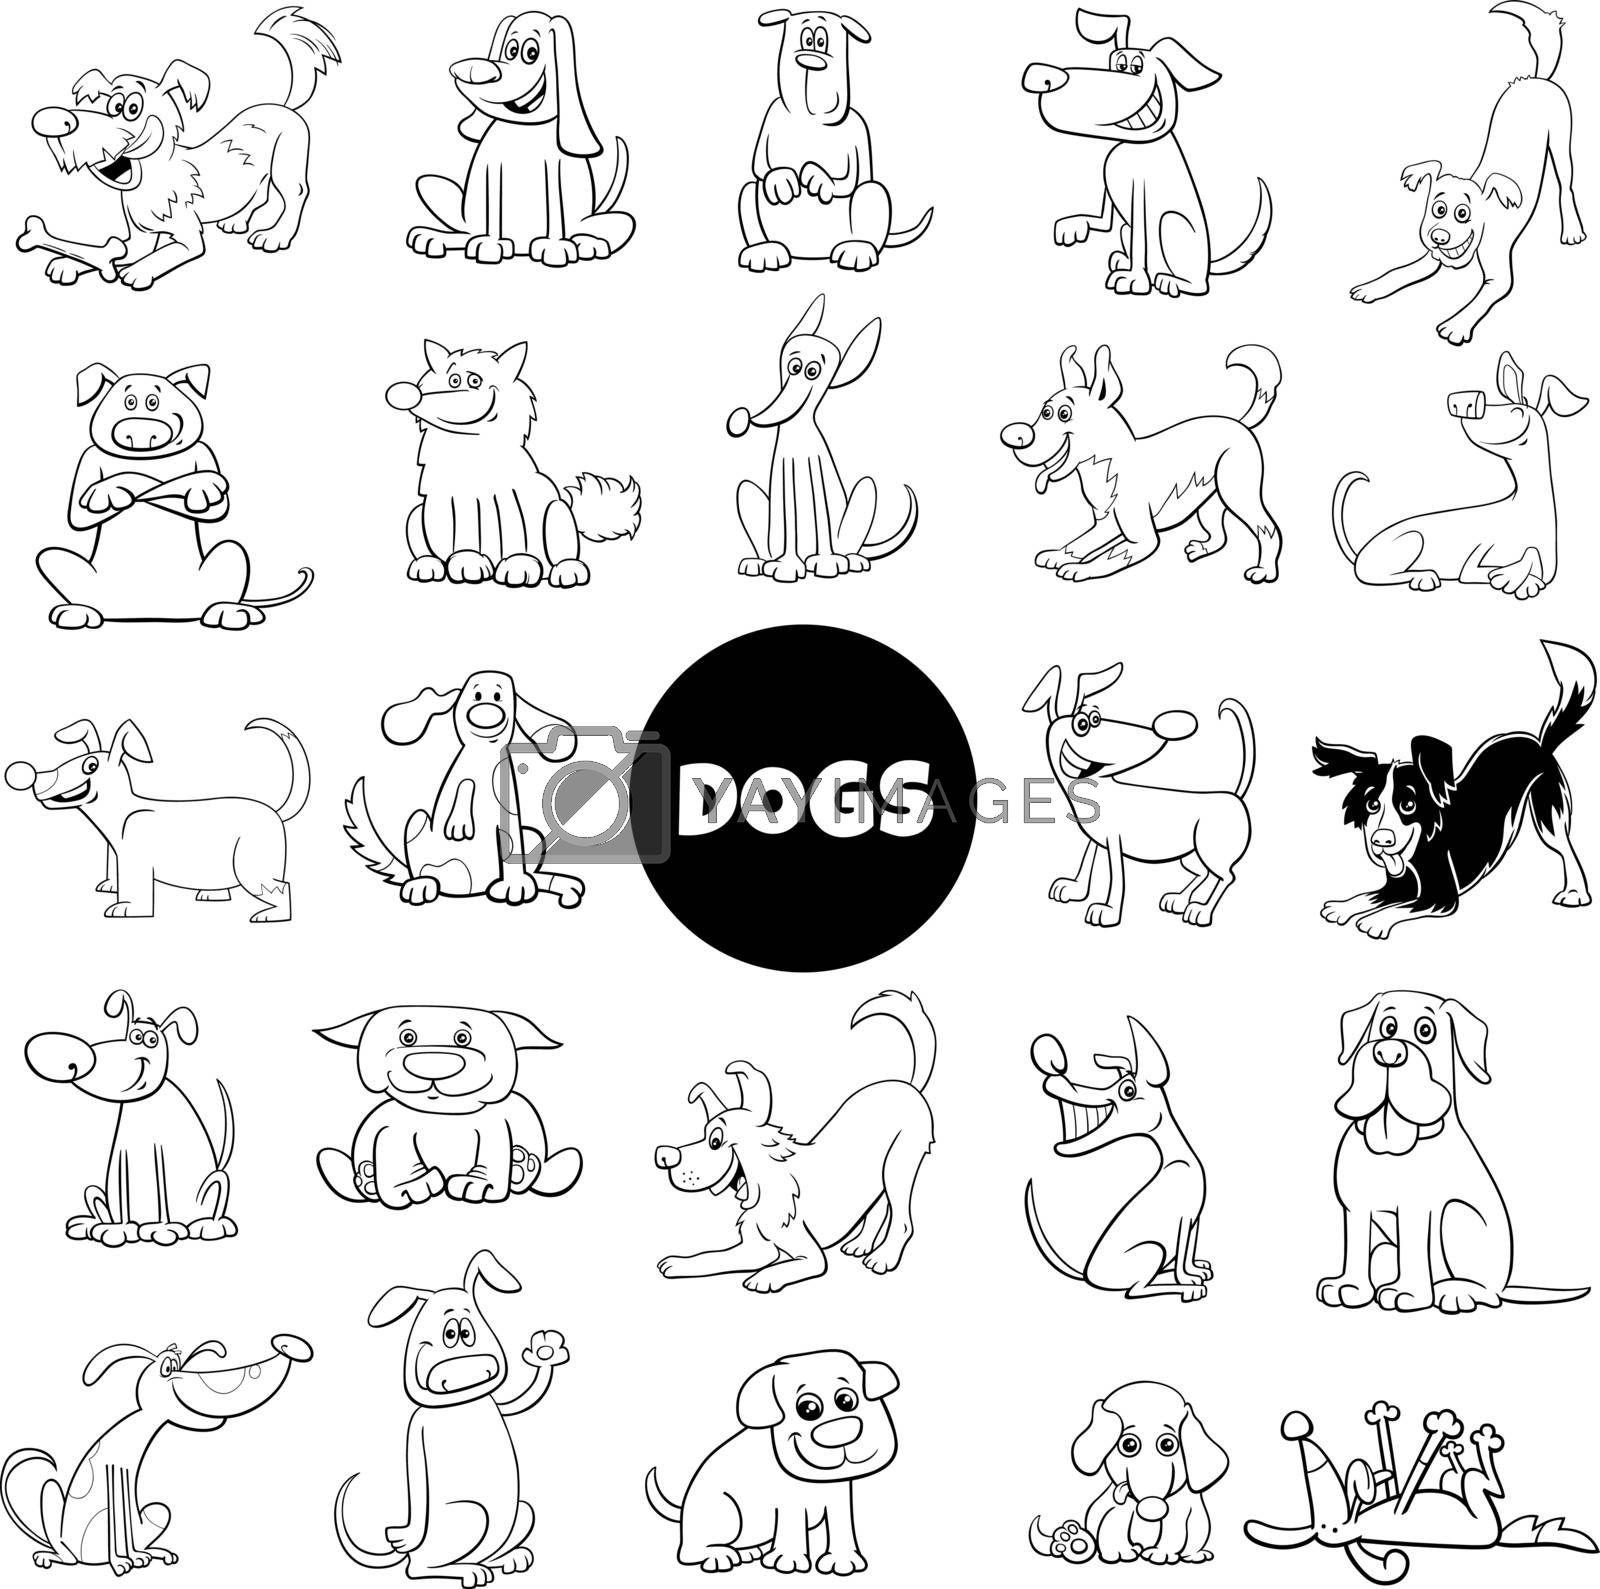 Black and White Cartoon Illustration of Dogs and Puppies Pet Animal Characters Large Set